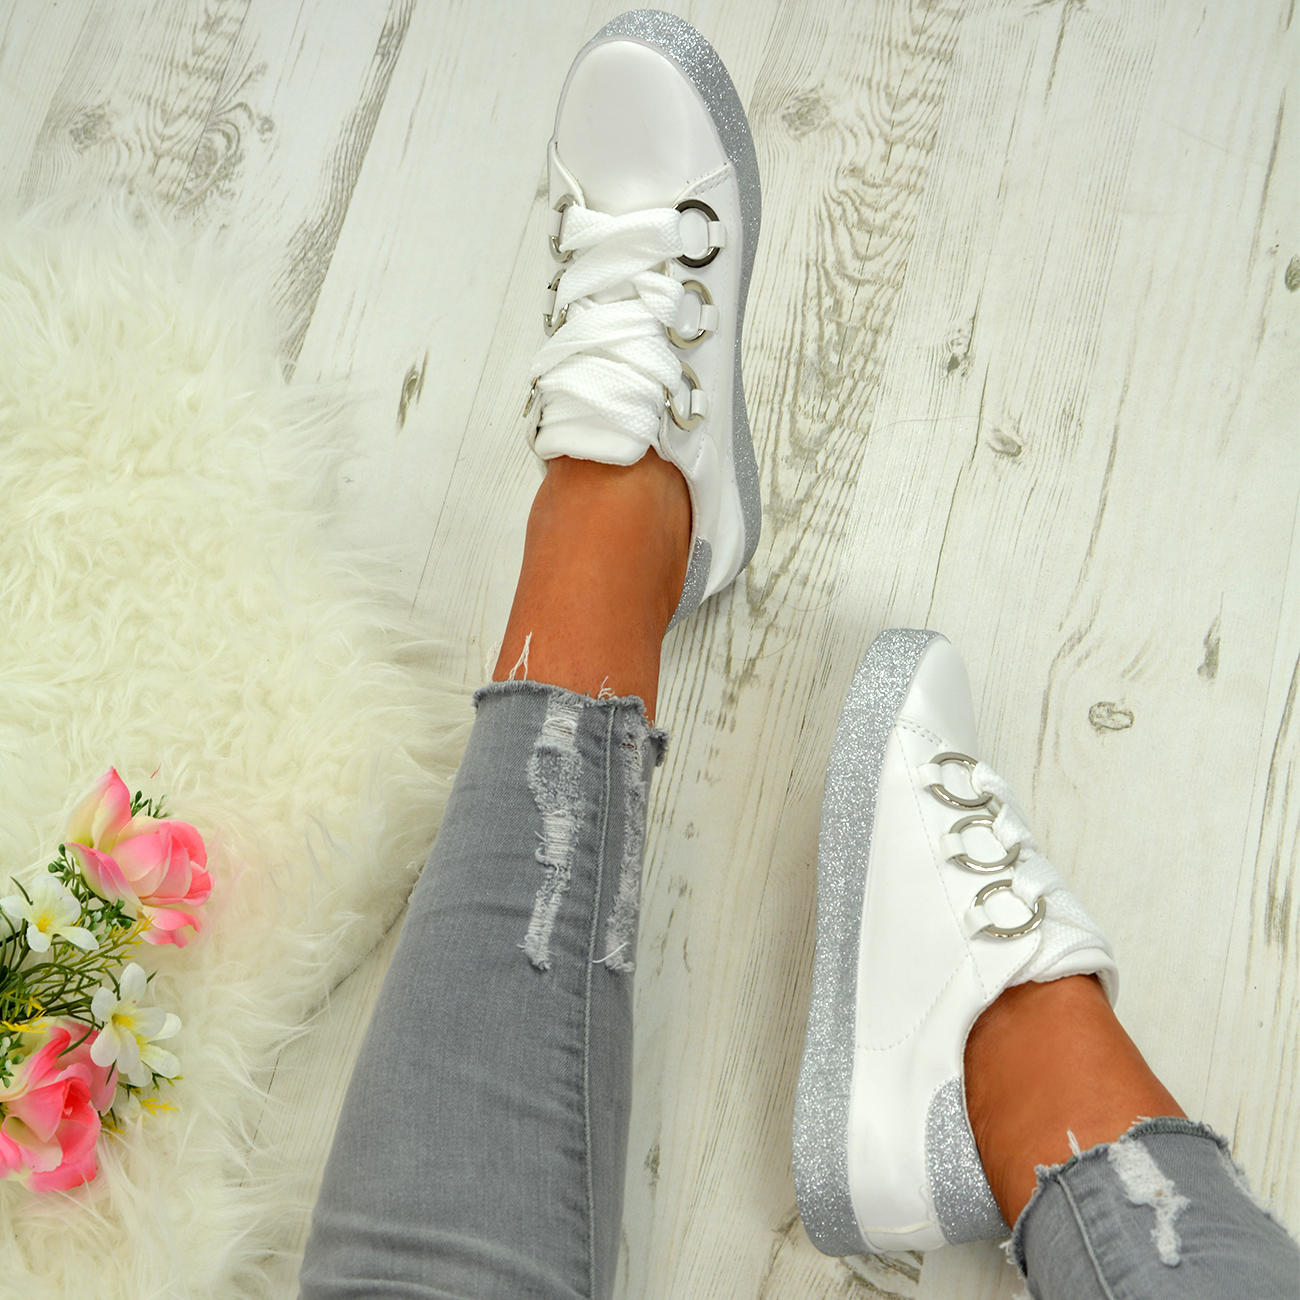 LADIES-WOMENS-GLITTER-SNEAKERS-SPARKLE-TRAINERS-LACE-UP-PLIMSOLL-PUMPS-SHOES thumbnail 27